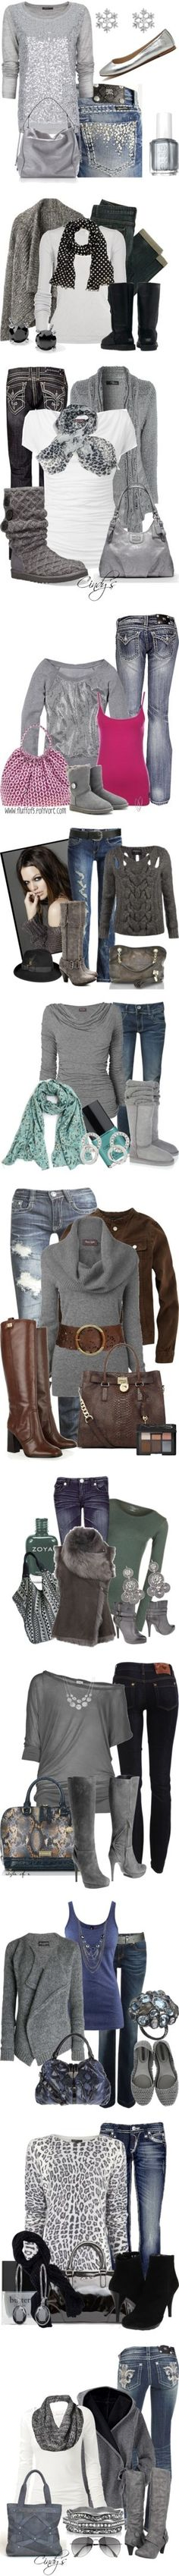 Chic grays/silver outfit combos.